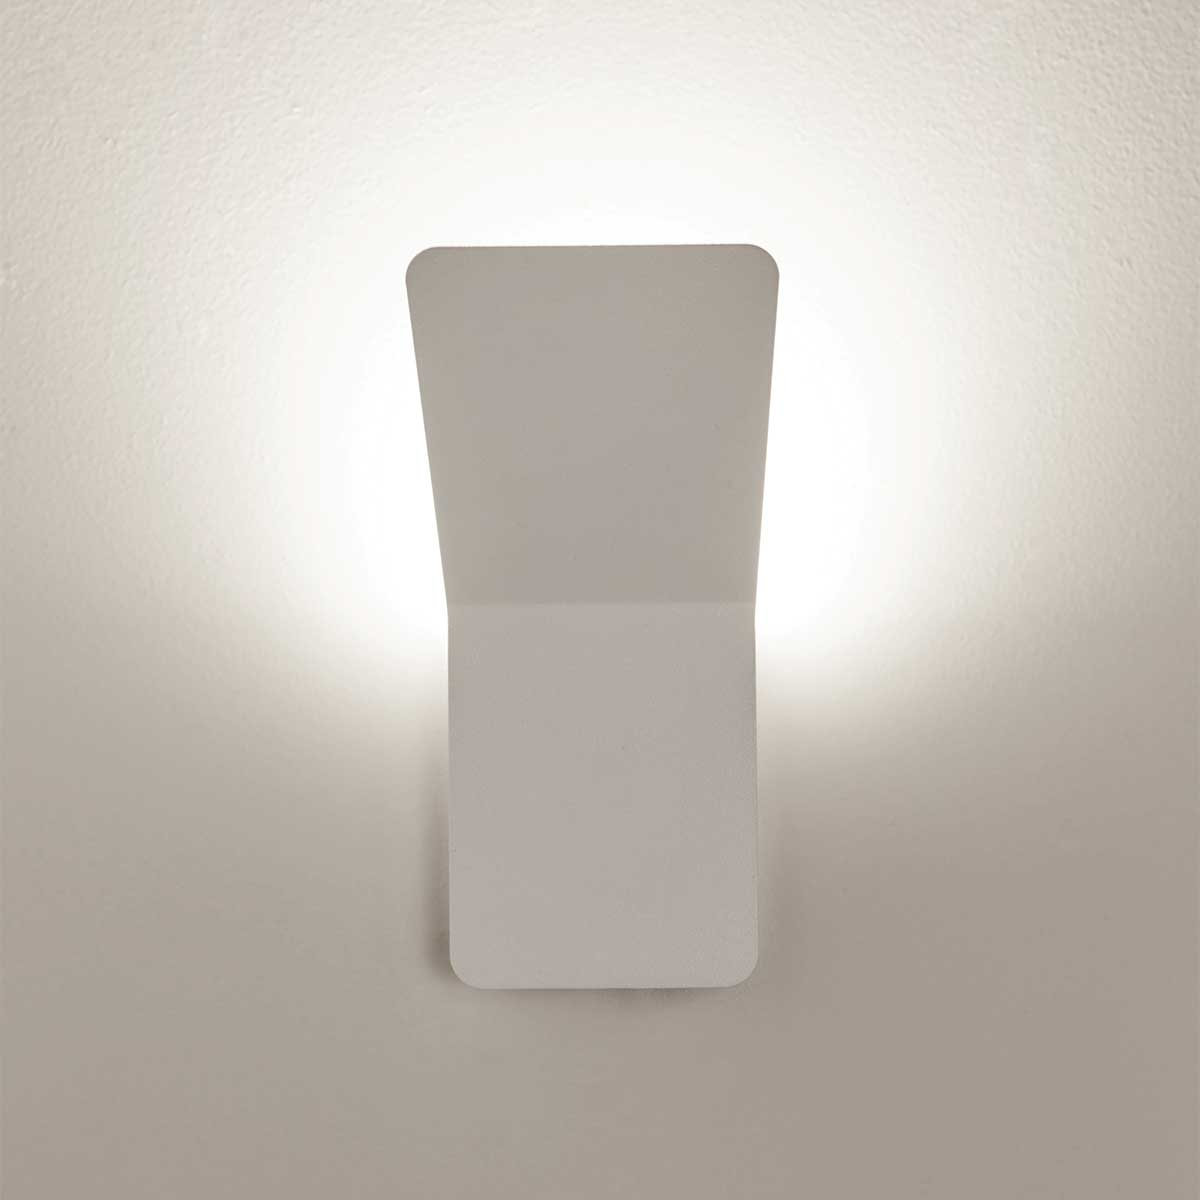 Walllights 2 a3 final prod 1200x1200